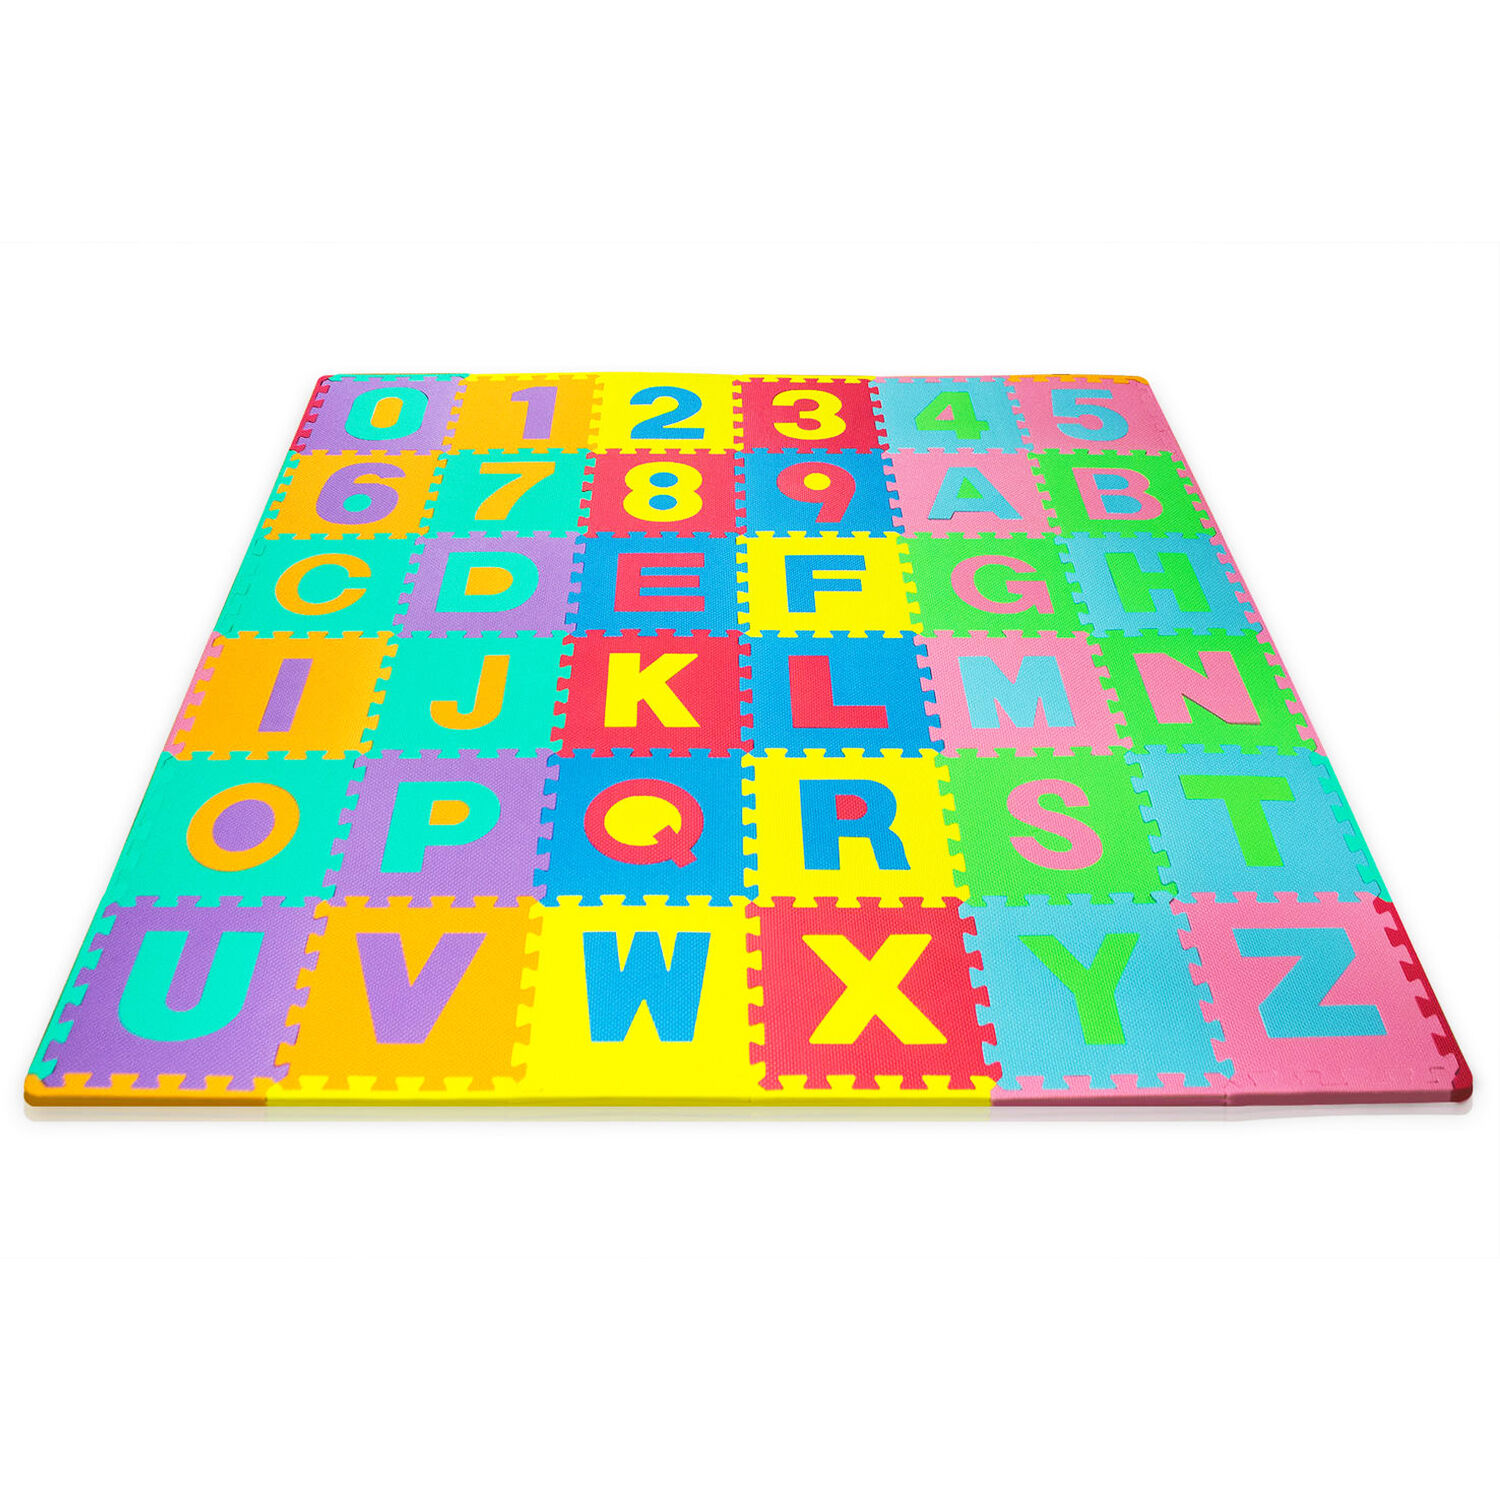 "Toddler Foam Floor Play Mat Puzzle 36 Pieces 12""Tile Baby Gy"